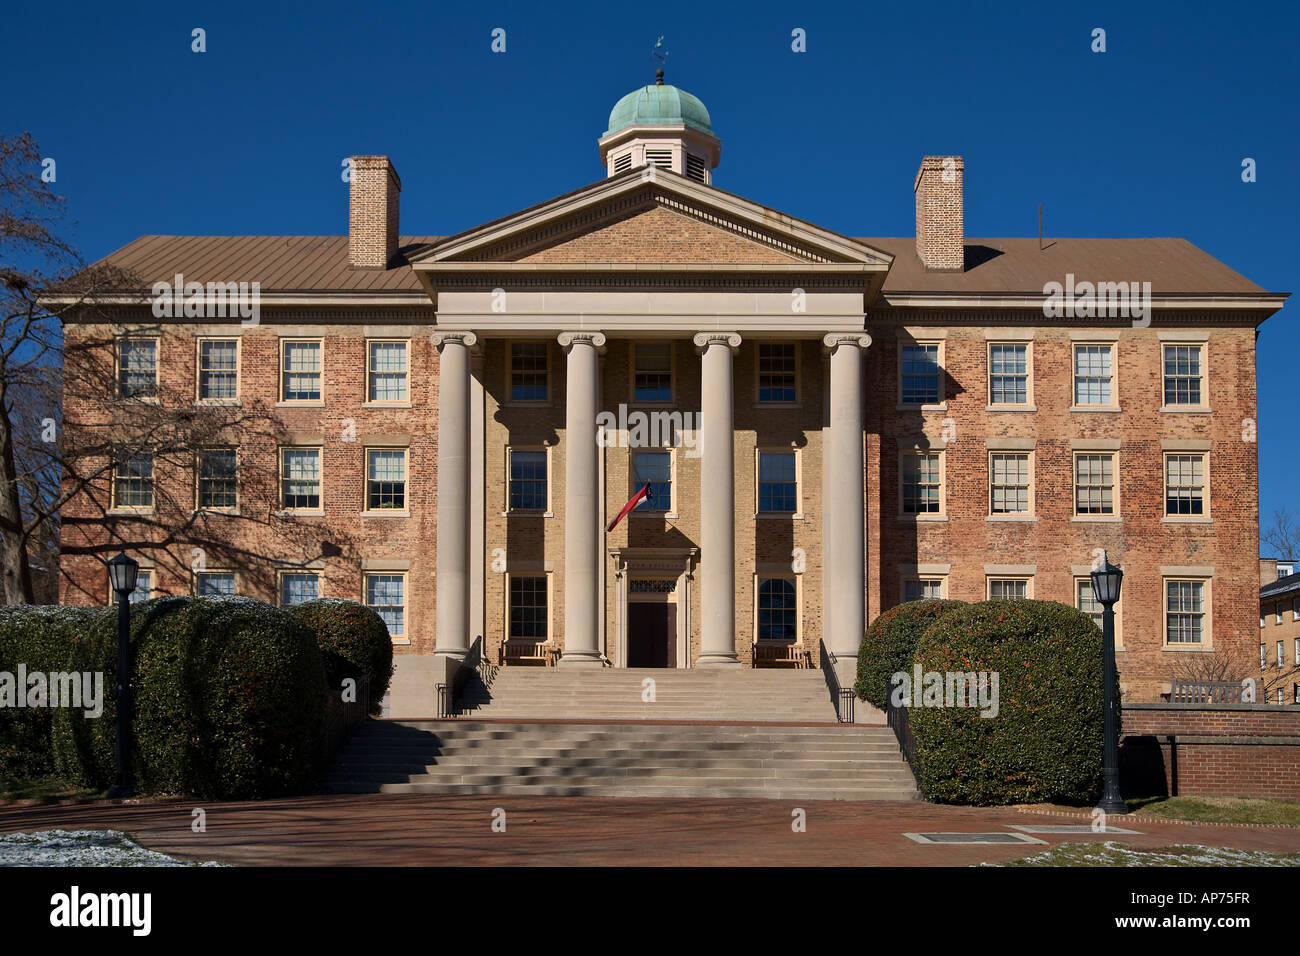 South Building of the University of North Carolina in Chapel Hill UNC - Stock Image